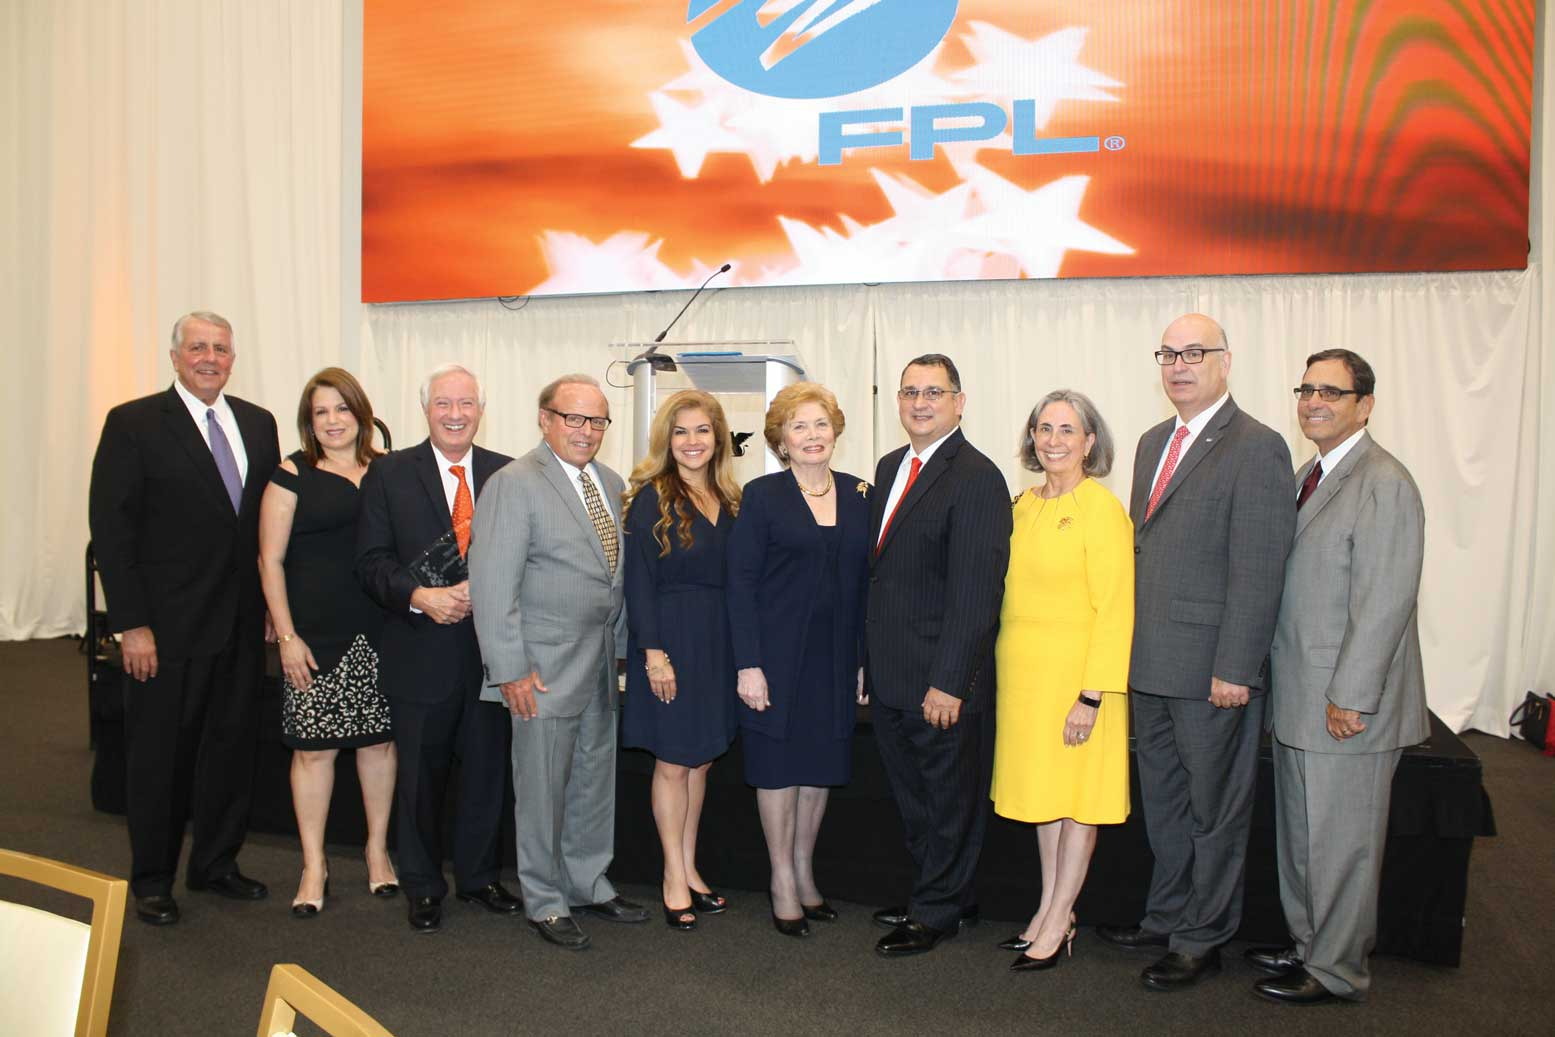 Greater Miami leaders get Gold Medal honors